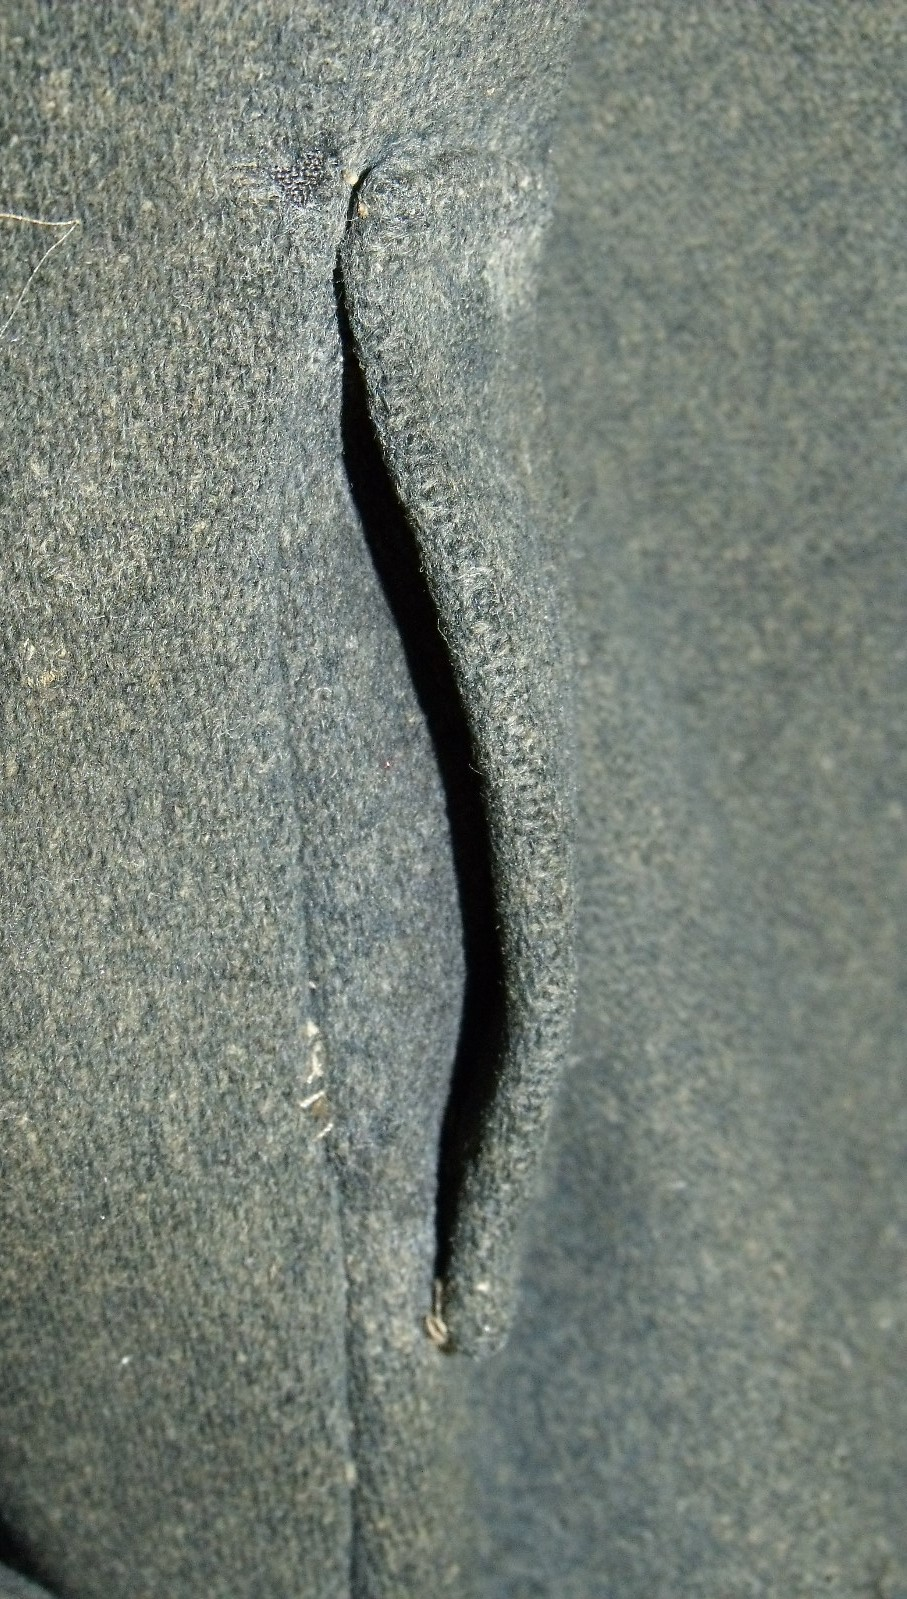 Gettysburg NPS jacket – slightly forward of side seam